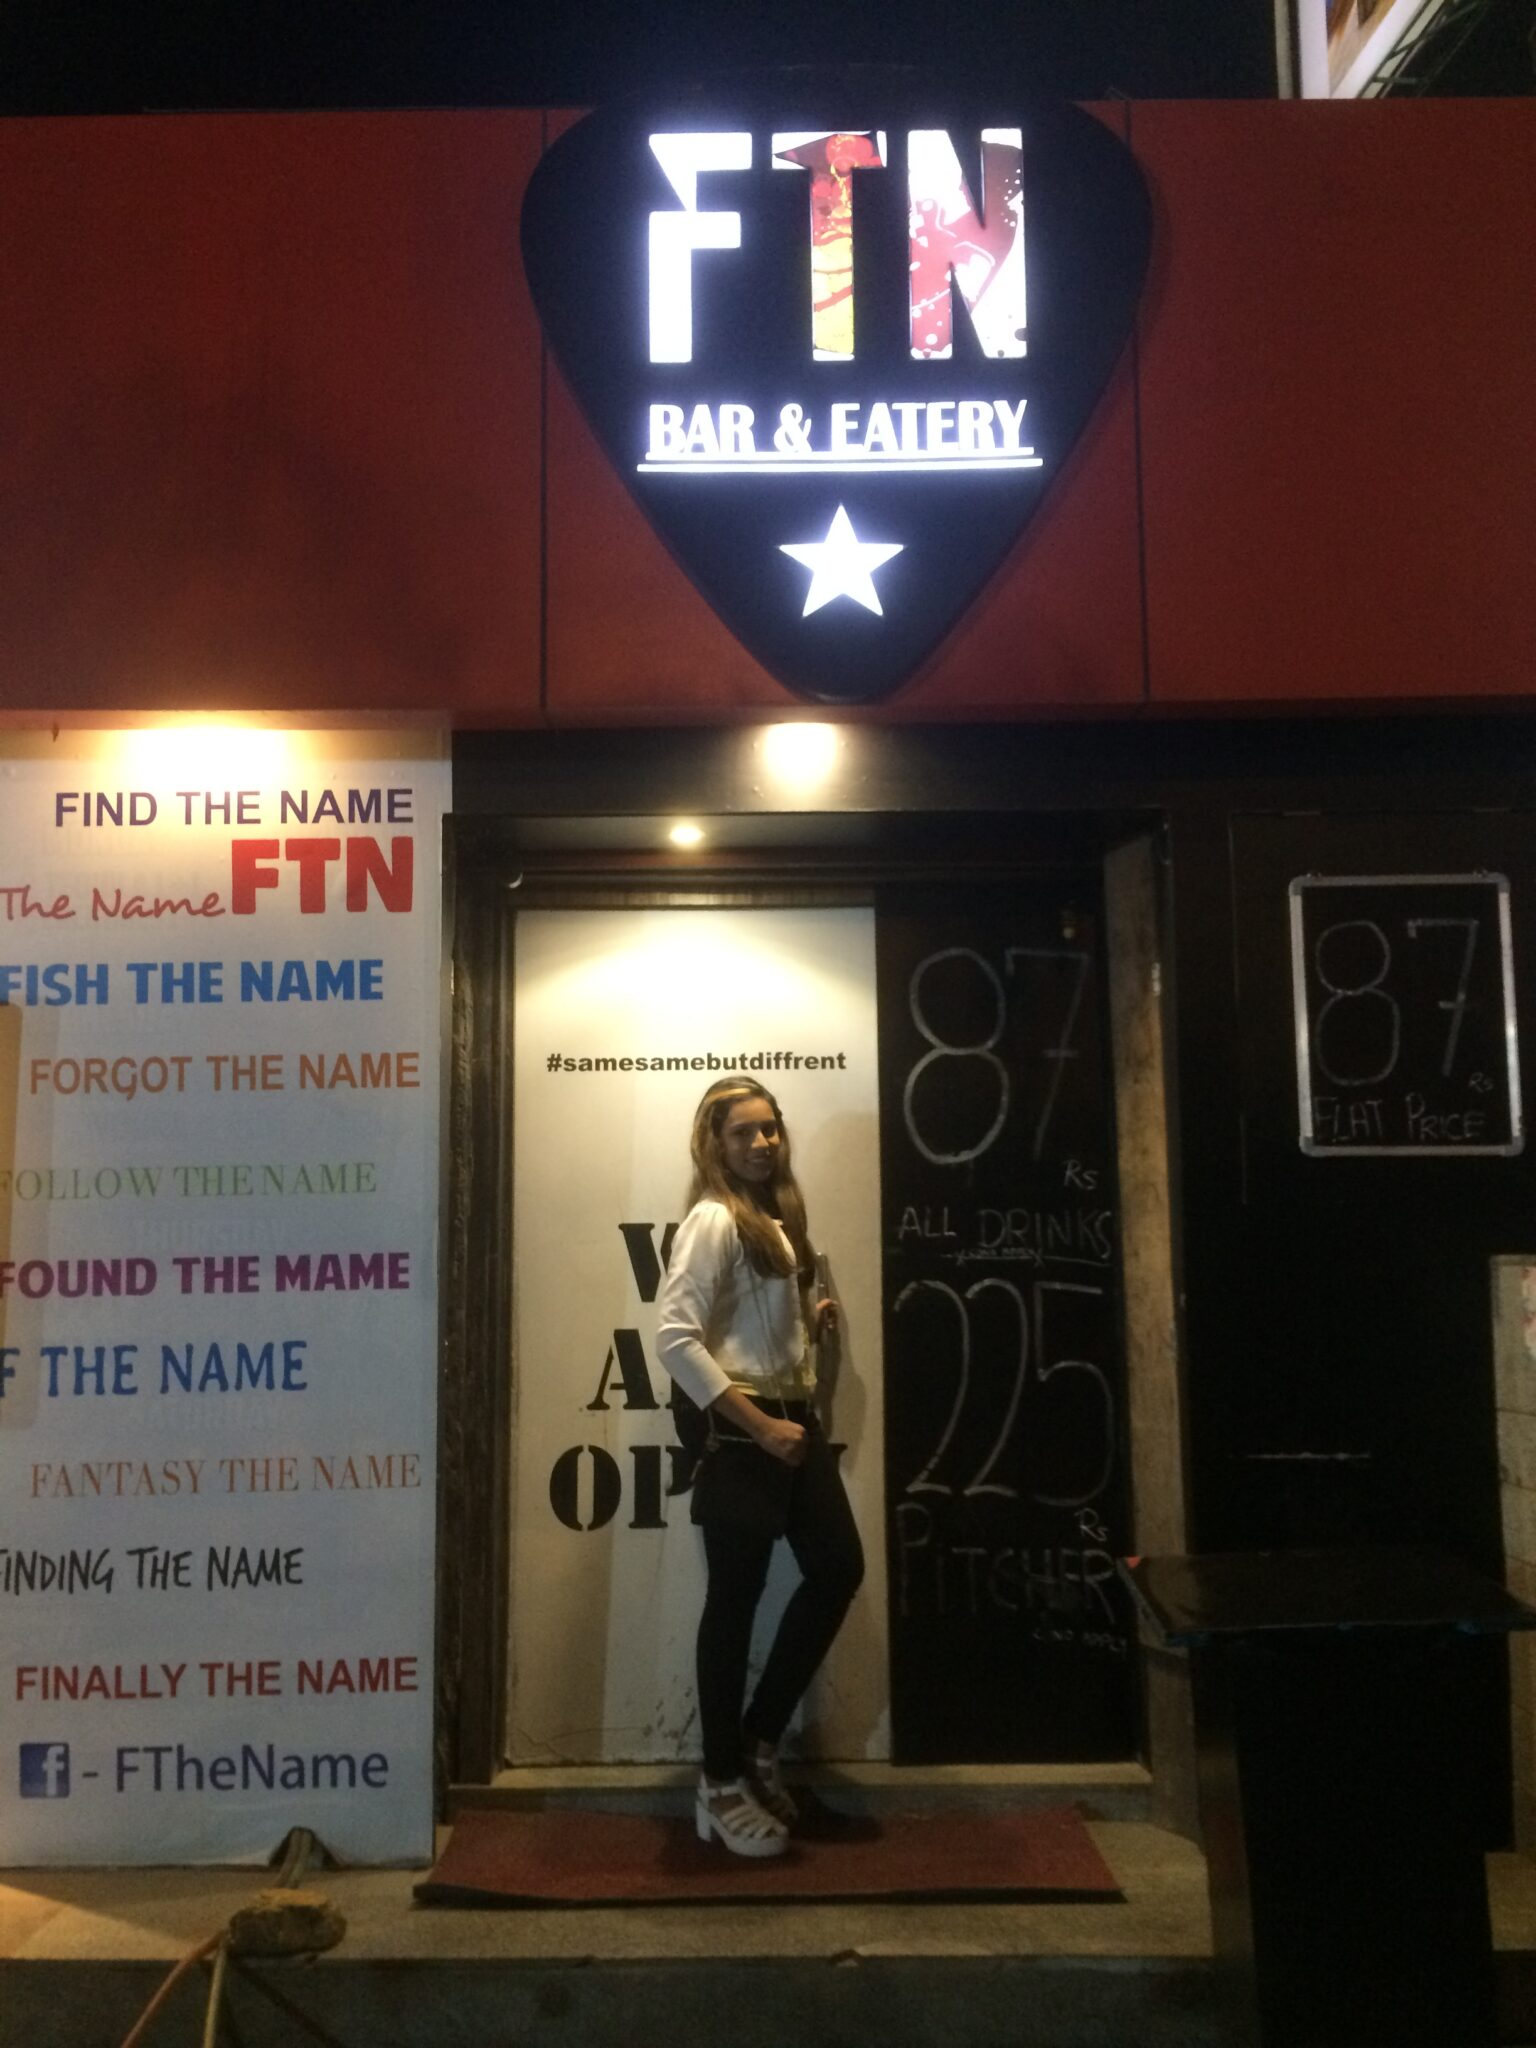 FTN - F*@# The Name!